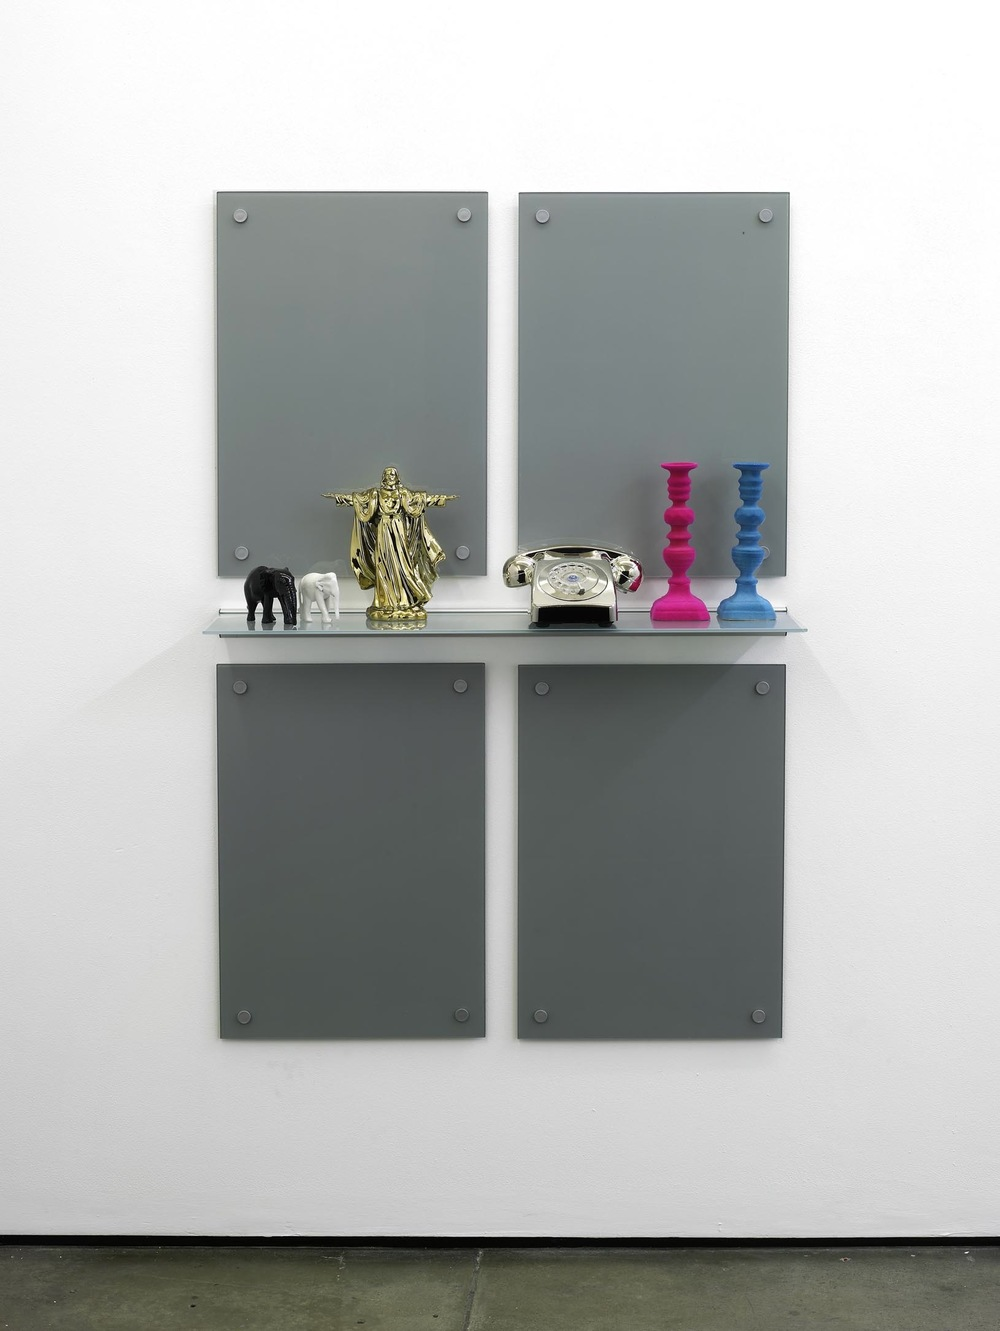 Matthew Darbyshire Untitled Homeware No. 9, 2011 Painted black and white carved elephant ornaments, chromed gold porcelain Jesus figurine, chromed silver retro telephone, flocked fuchsia brass candlestick, flocked turquoise brass candlestick, glass and steel supports: 135 x 95 x 26.5 cm